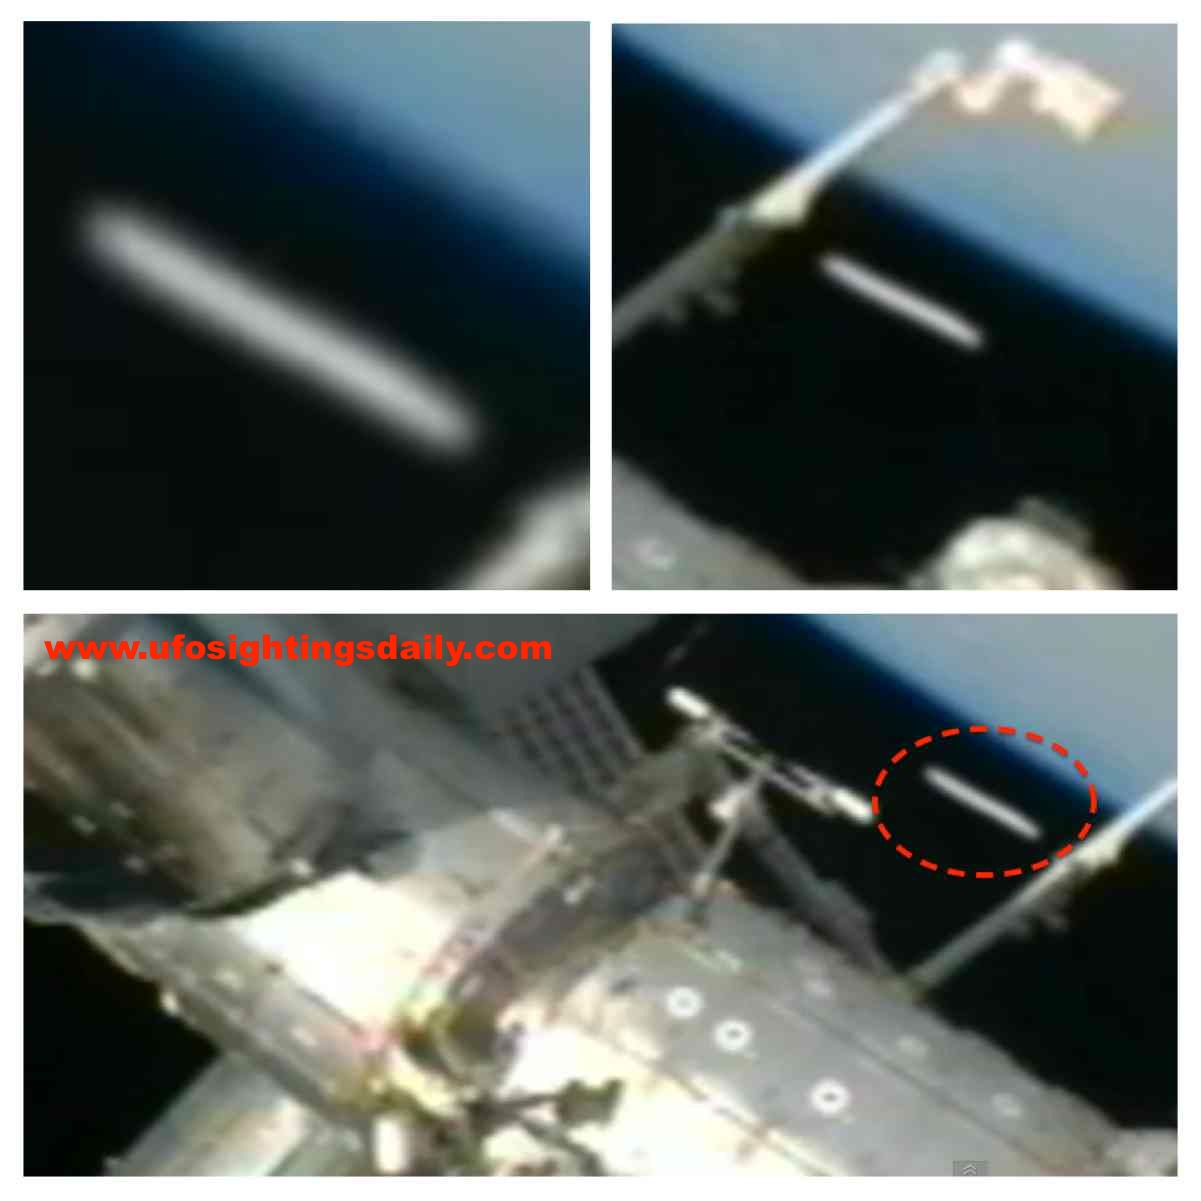 nasa ufos in space - photo #33